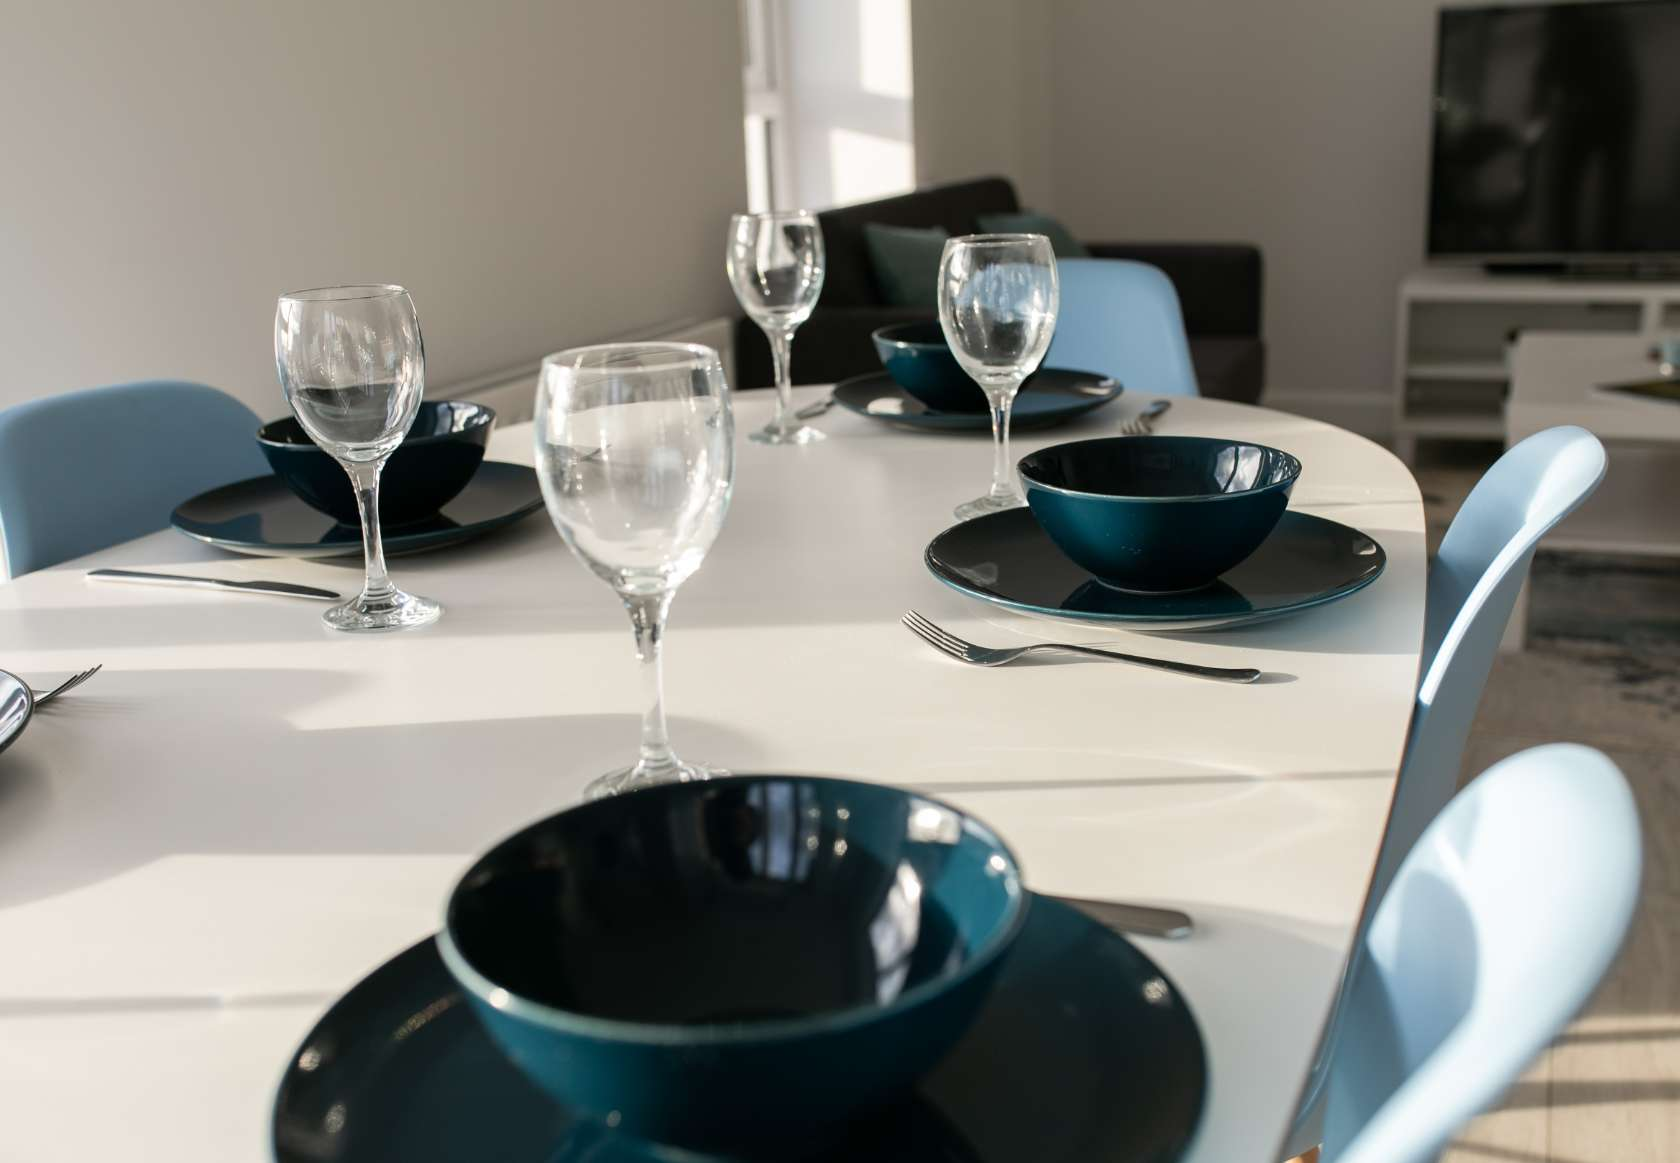 self-catering holiday accommodation portrush apartment image